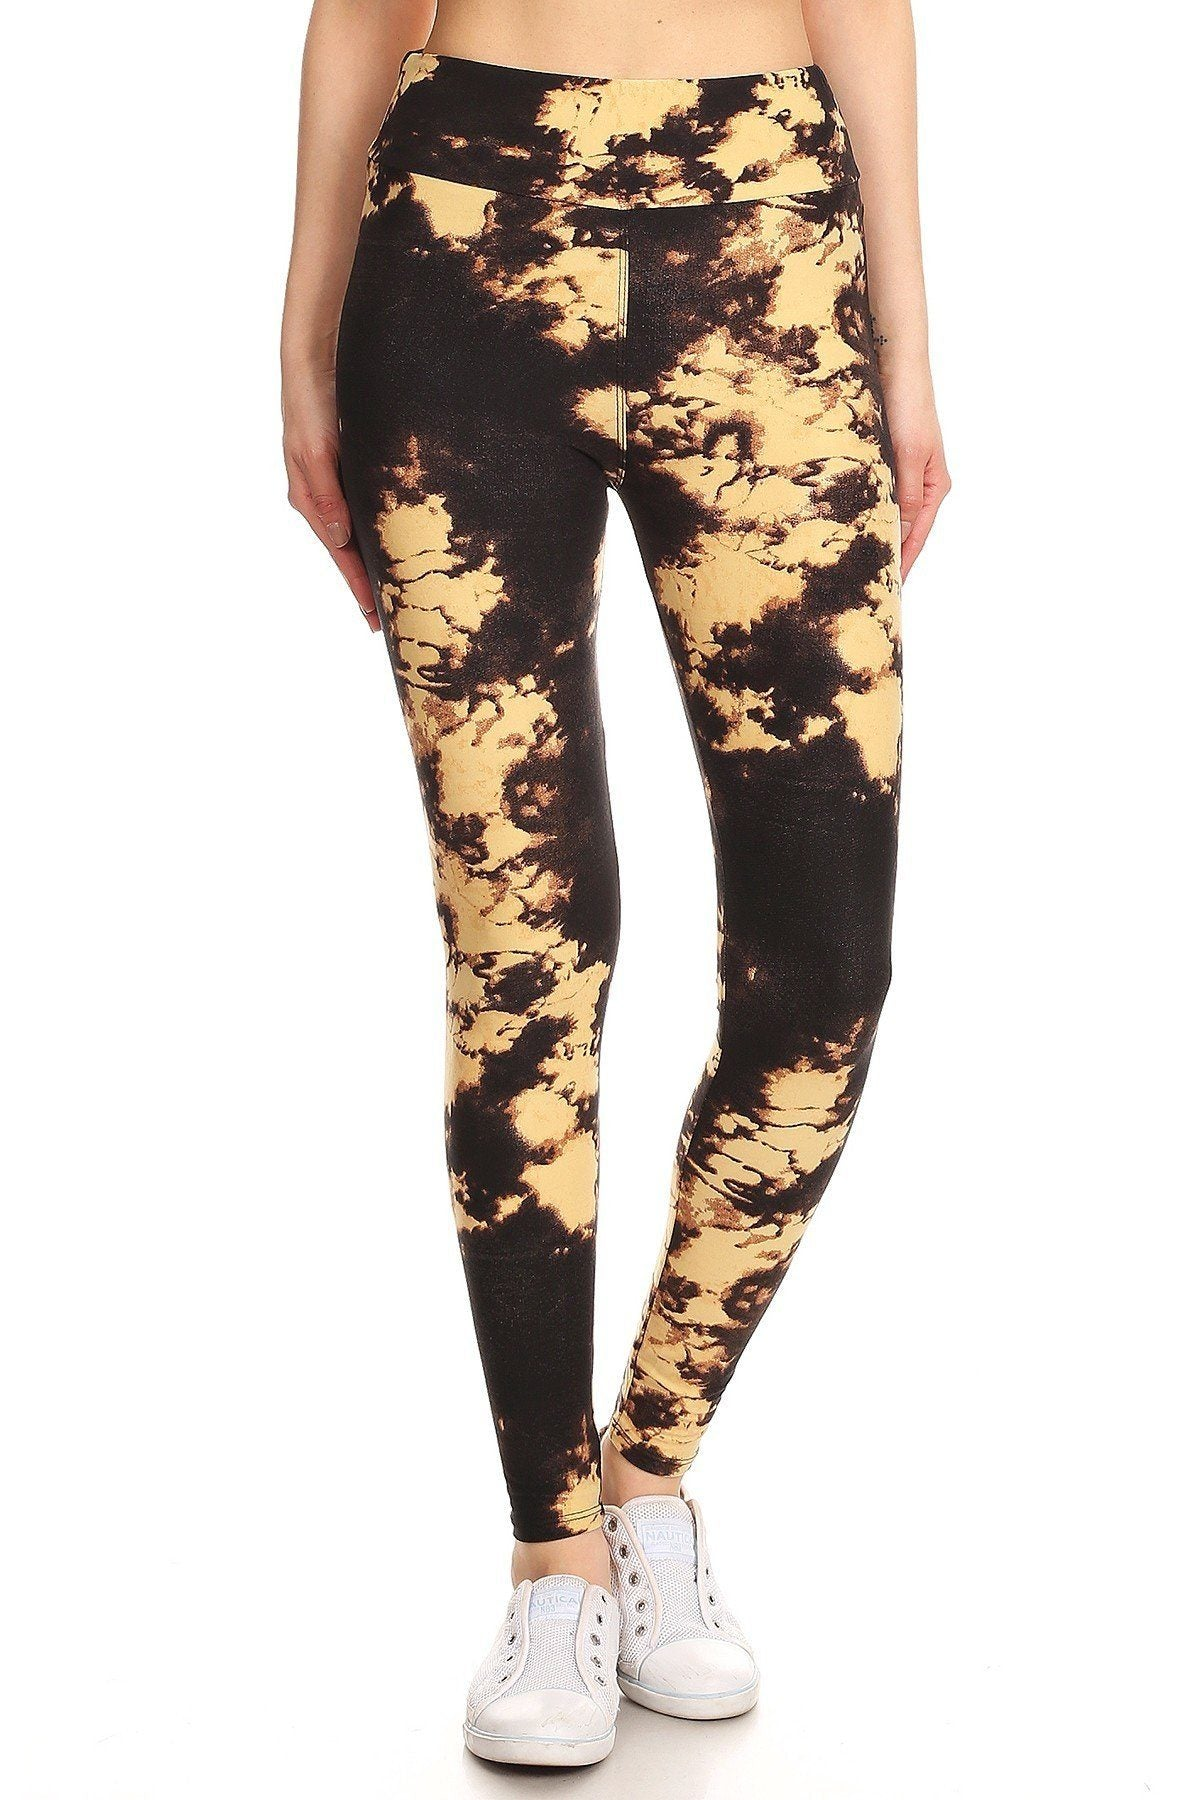 Yoga Style Banded Lined Tie Dye Print, Full Length Leggings In A Slim Fitting Style With A Banded High Waist.